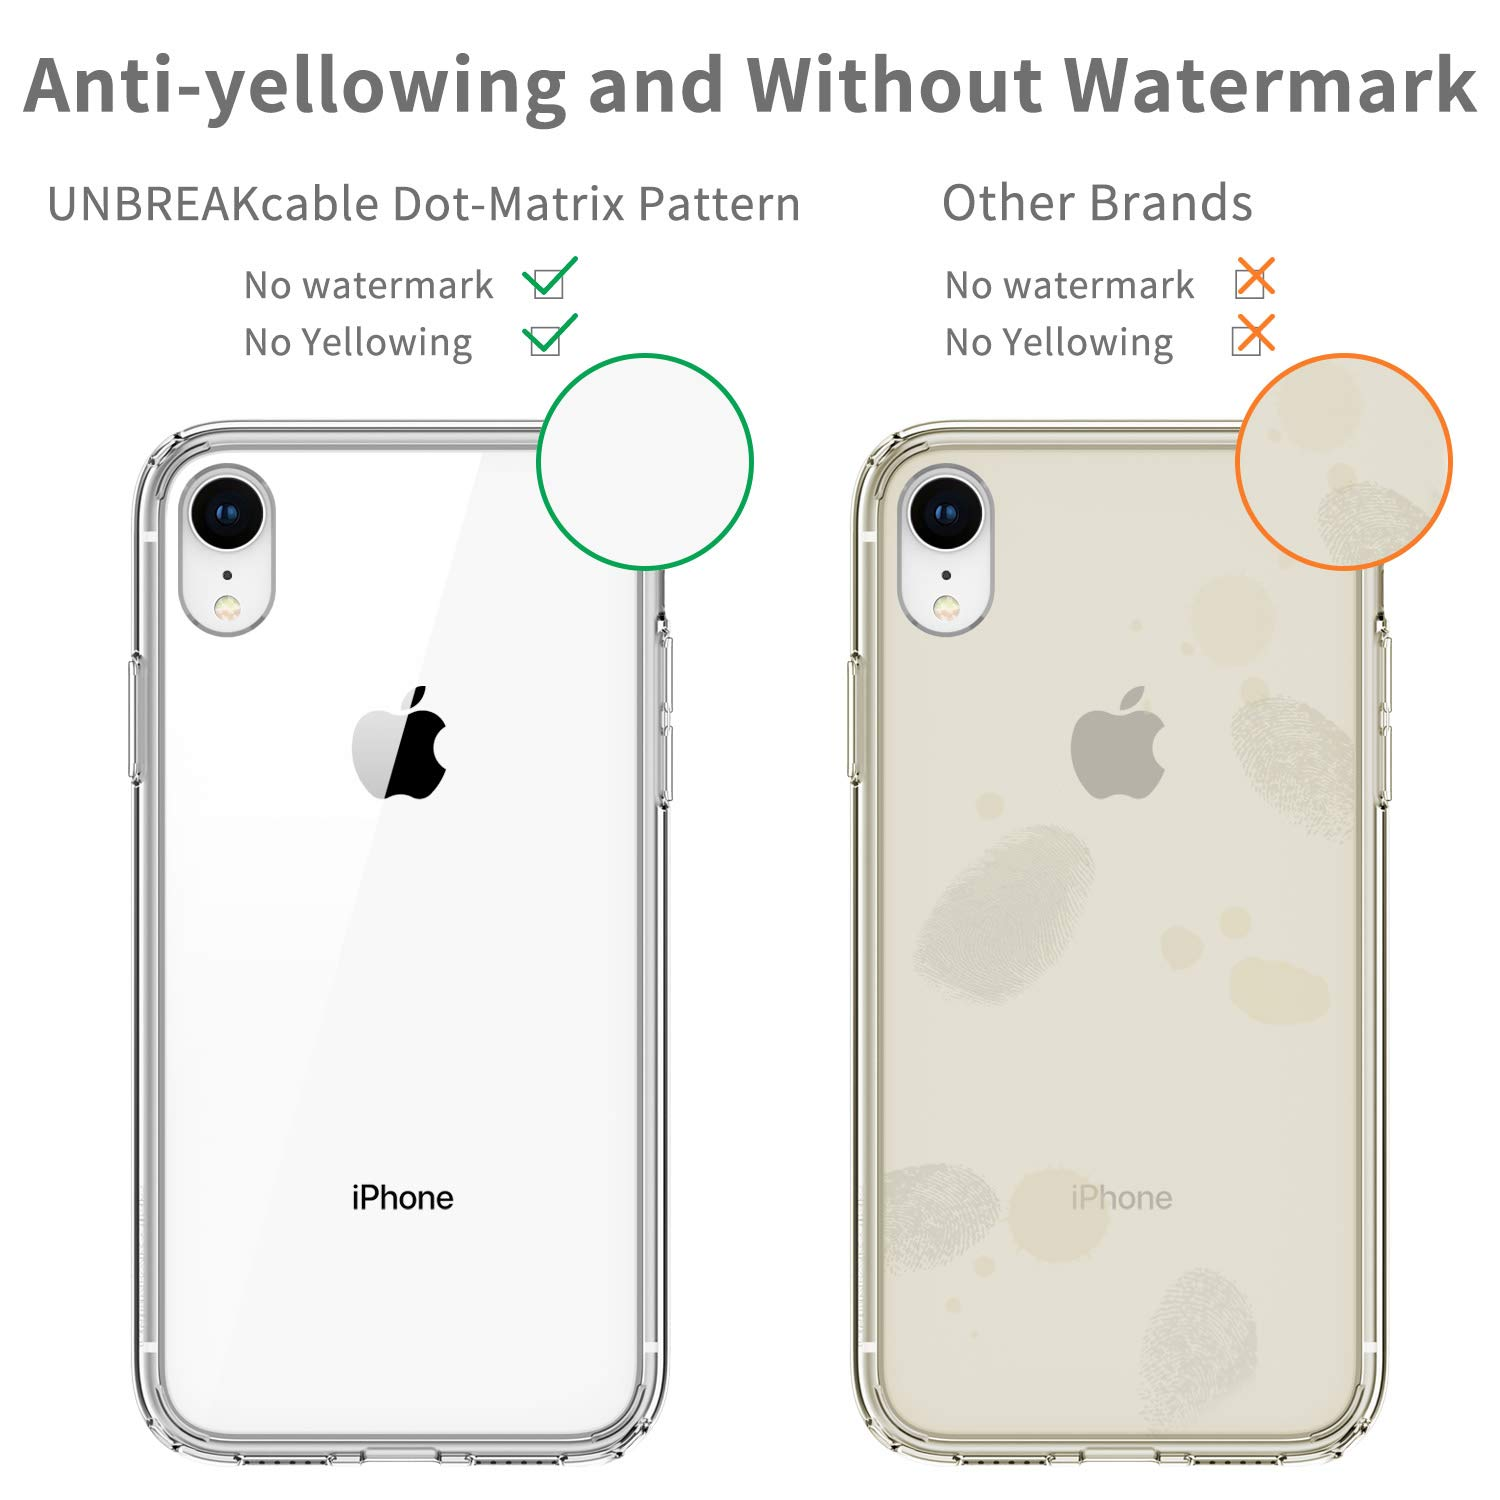 UNBREAKcable Case for iPhone XR 6.1 Inch - [Anti-Yellow & Anti-Scratch] Ultra Clear Shockproof Hard PC Back & Soft TPU Bumper Protective Cover for iPhone XR - Transparent